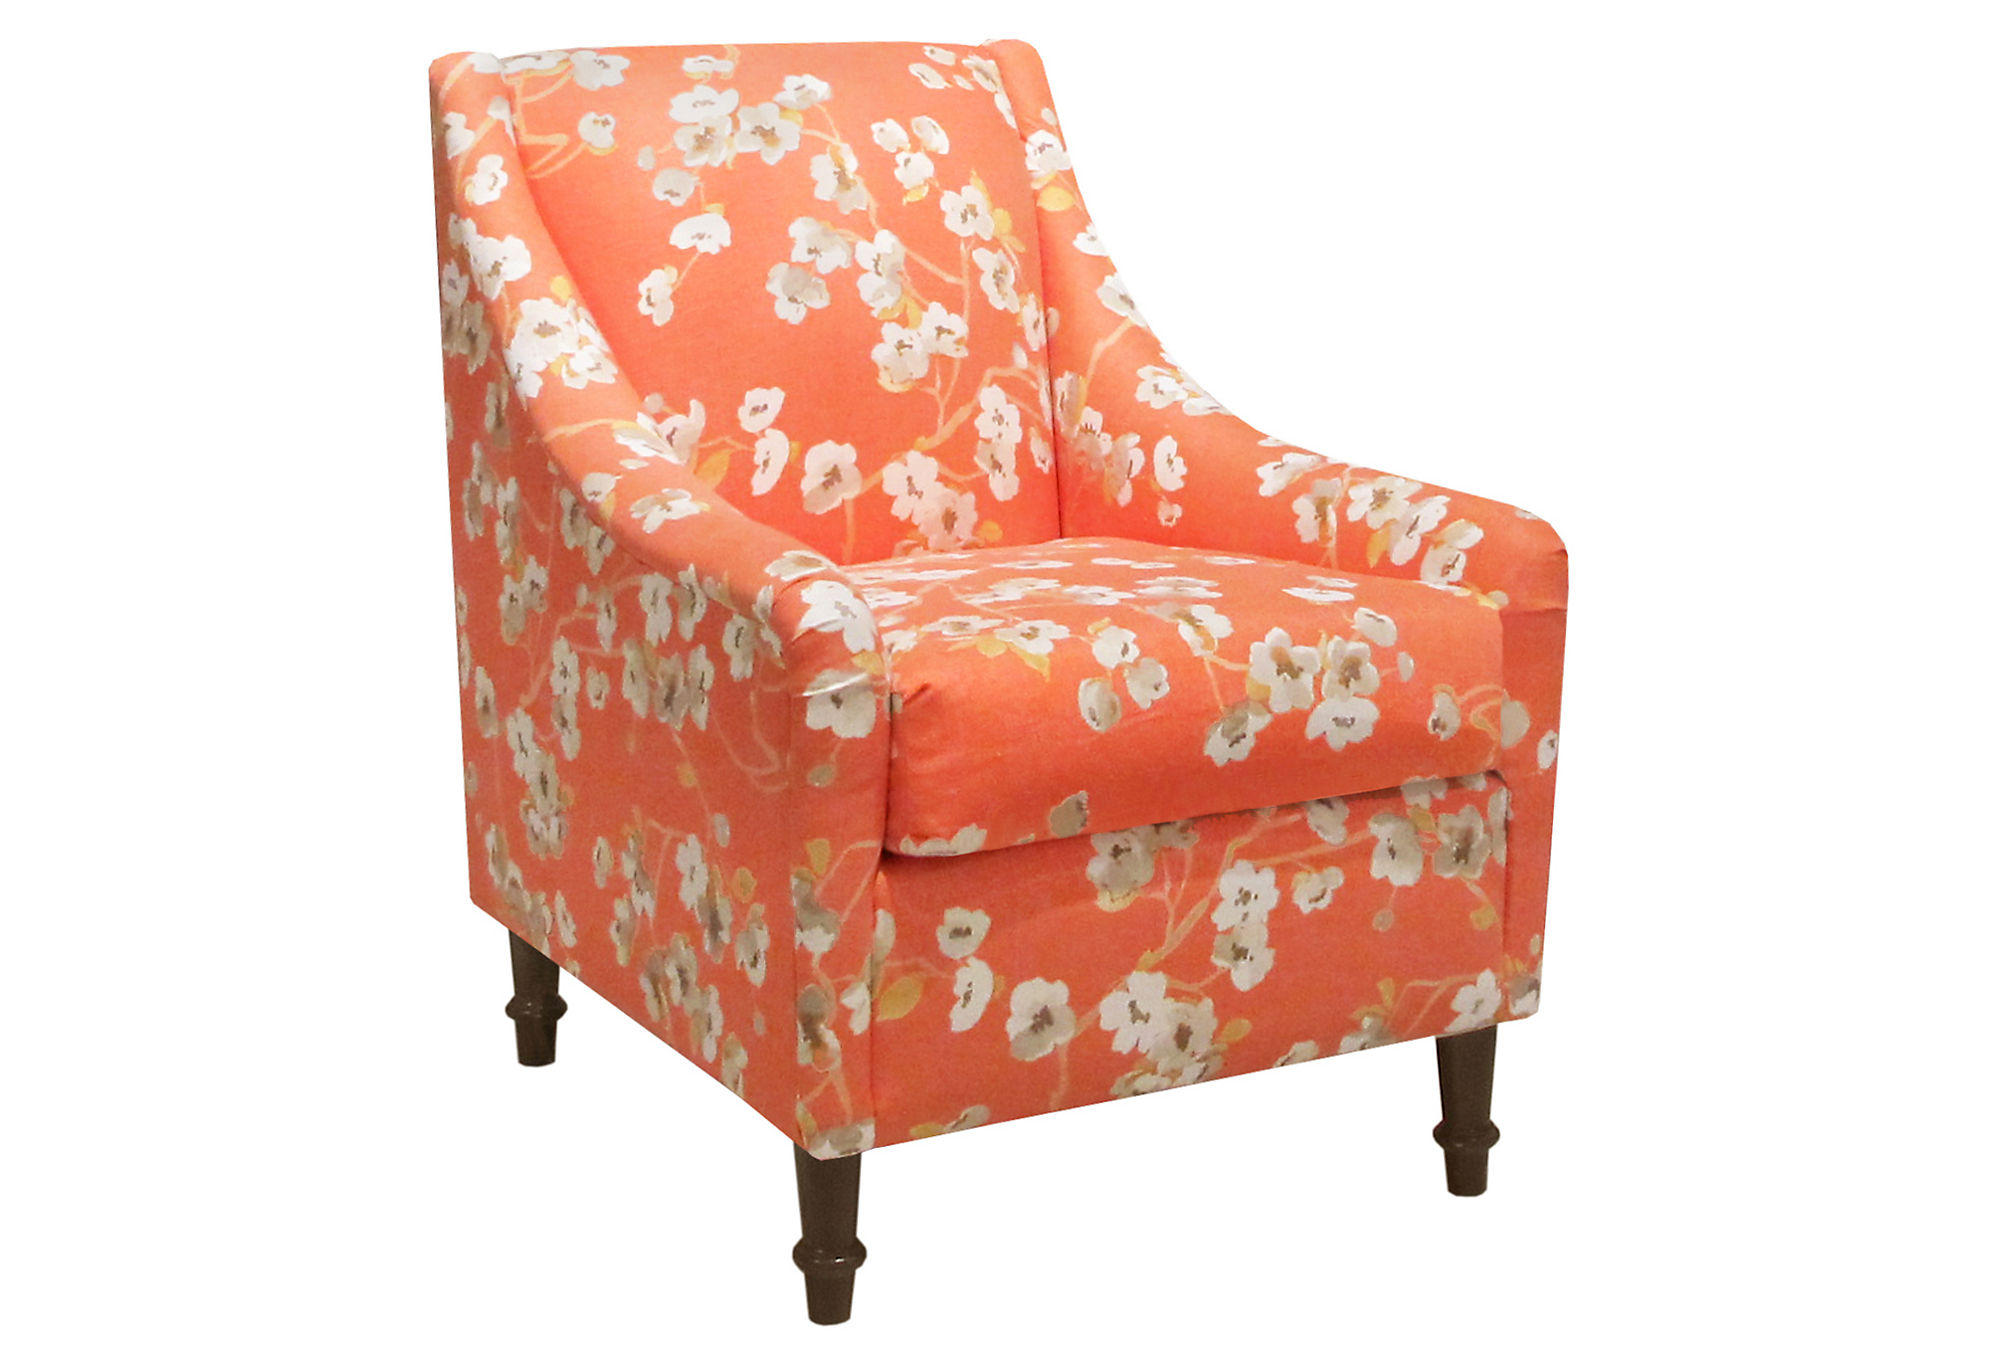 Orange Accent Chairs Holmes Accent Chair Orange Accent And From One Kings Lane